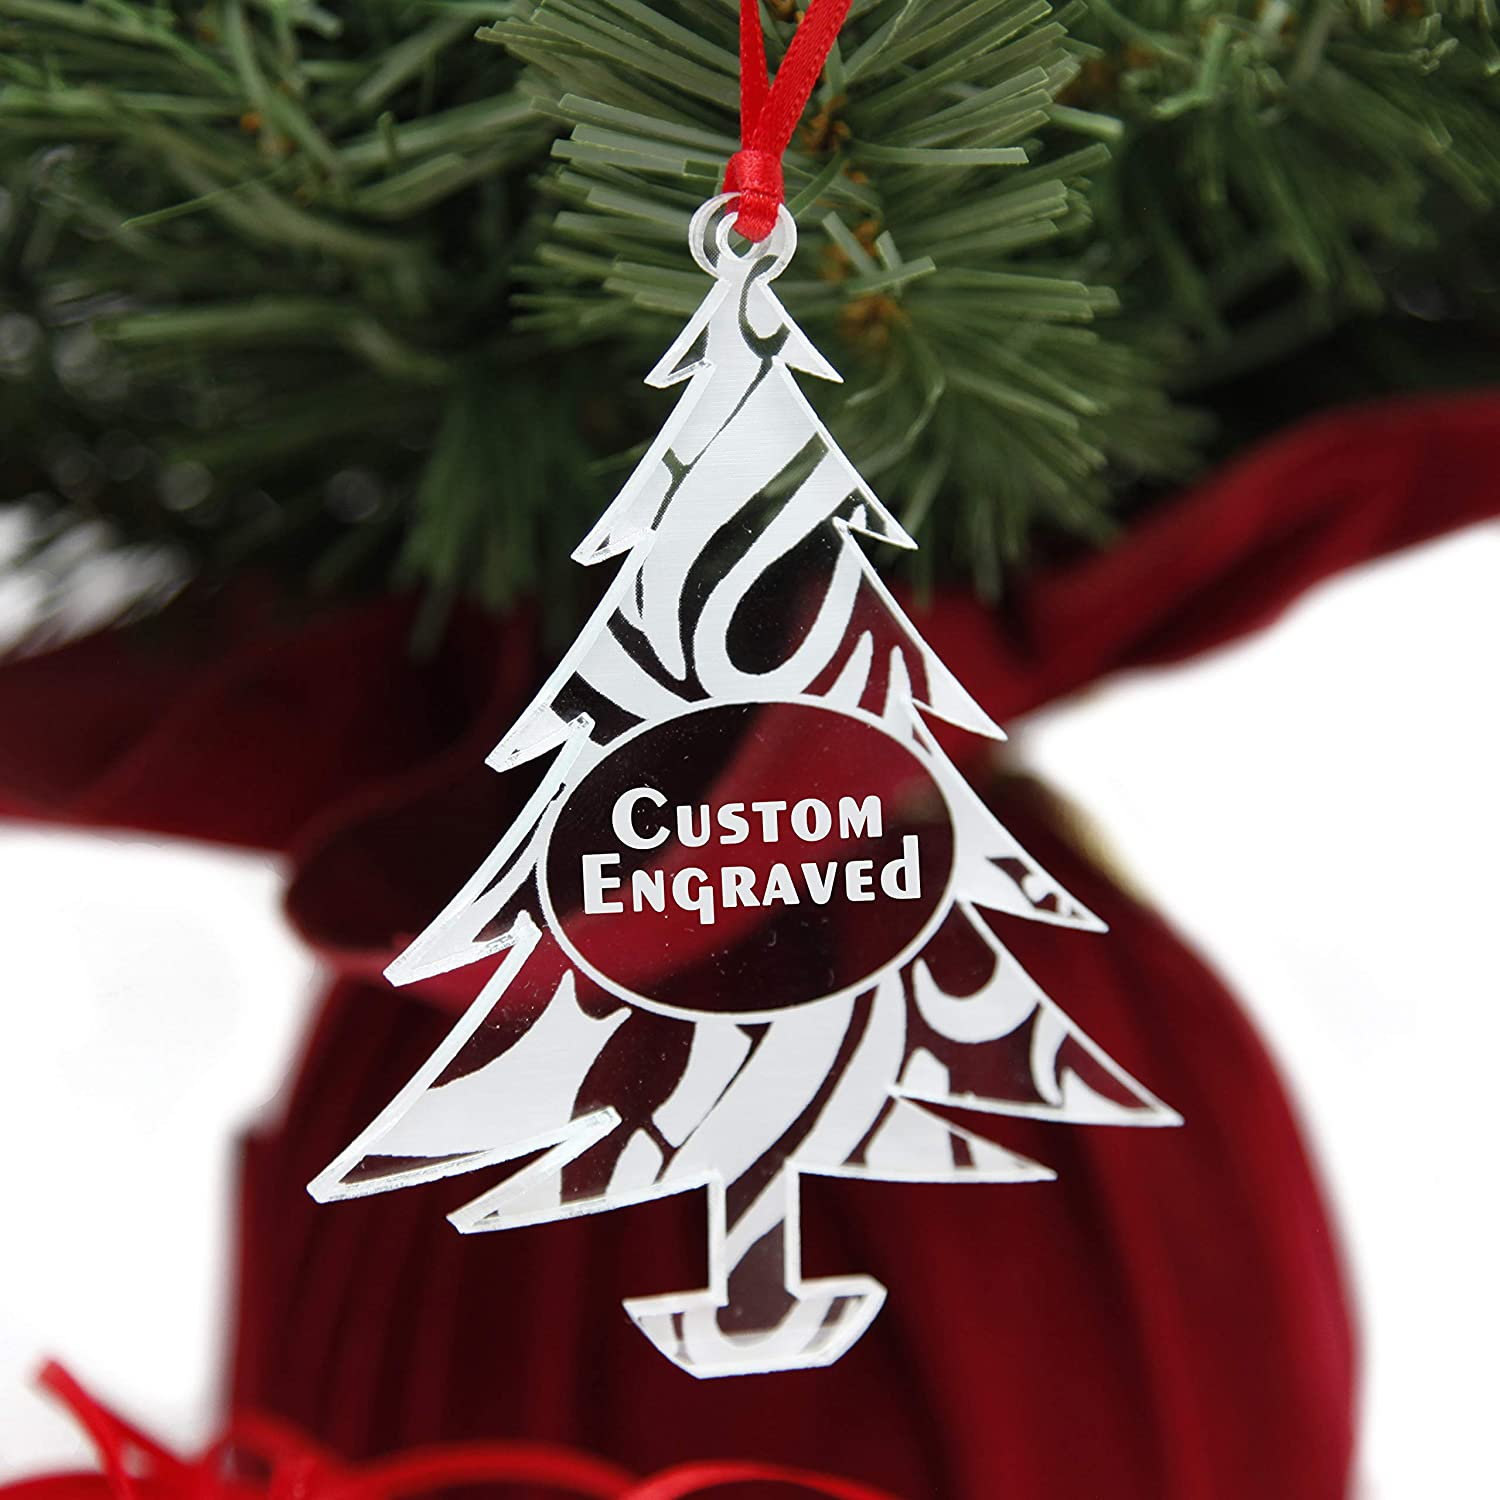 Amazon Com Lhs Engraving Personalized Christmas Tree Ornaments 2020 Best Xmas Gifts For Newlyweds Babies First Weddings Couples Clear Acrylic Custom Engraved Keepsake Cute Swirl Pattern Home Kitchen,Benjamin Moore Black Paints